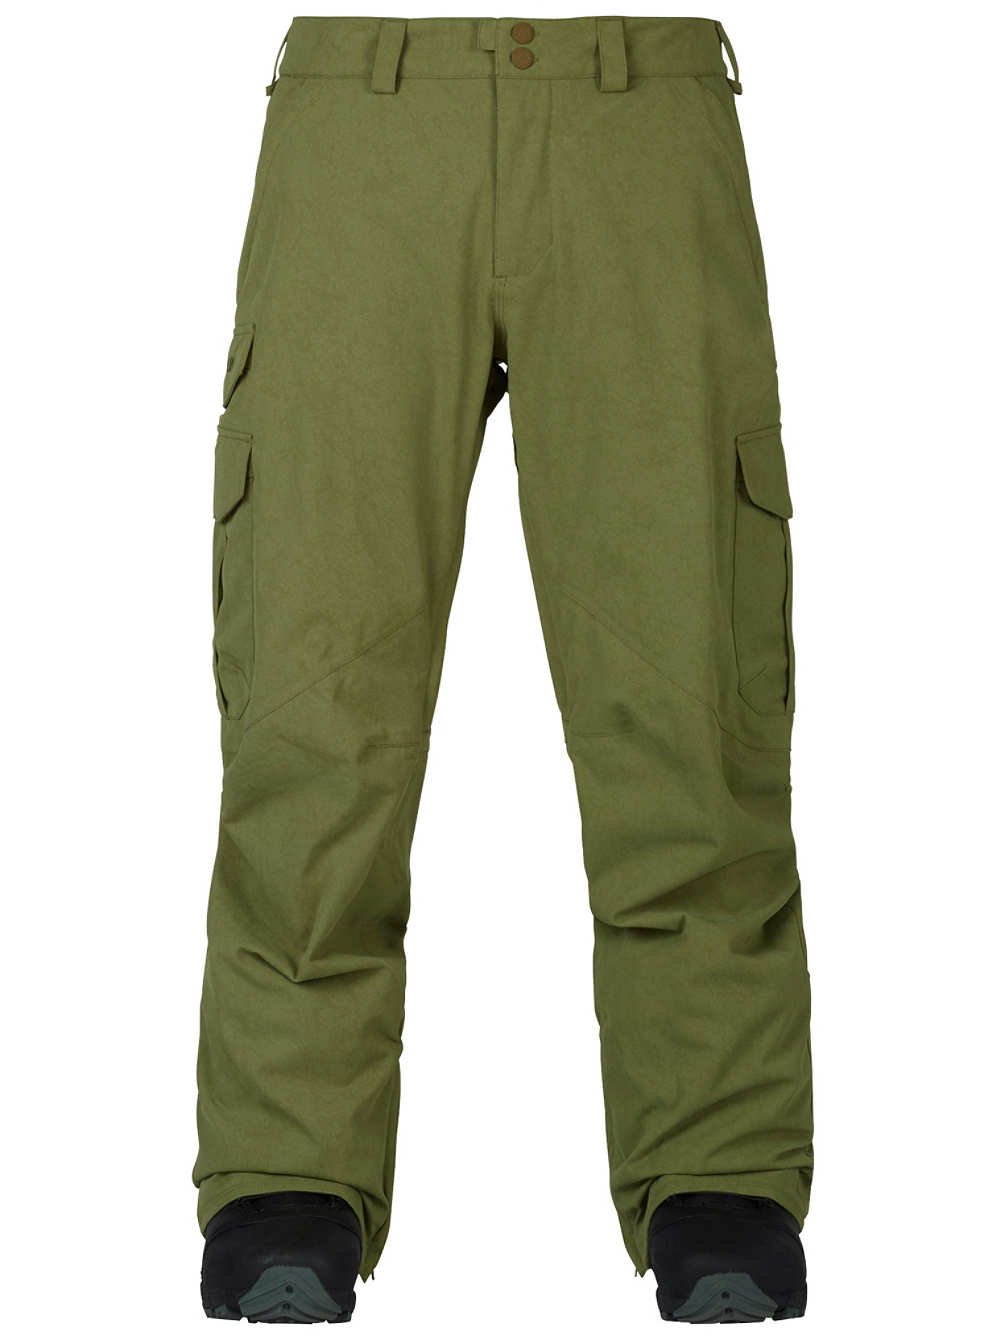 Olive branch distress M Burton Mb Cargo Pt -Winter 2018- Olive Brnch Distress